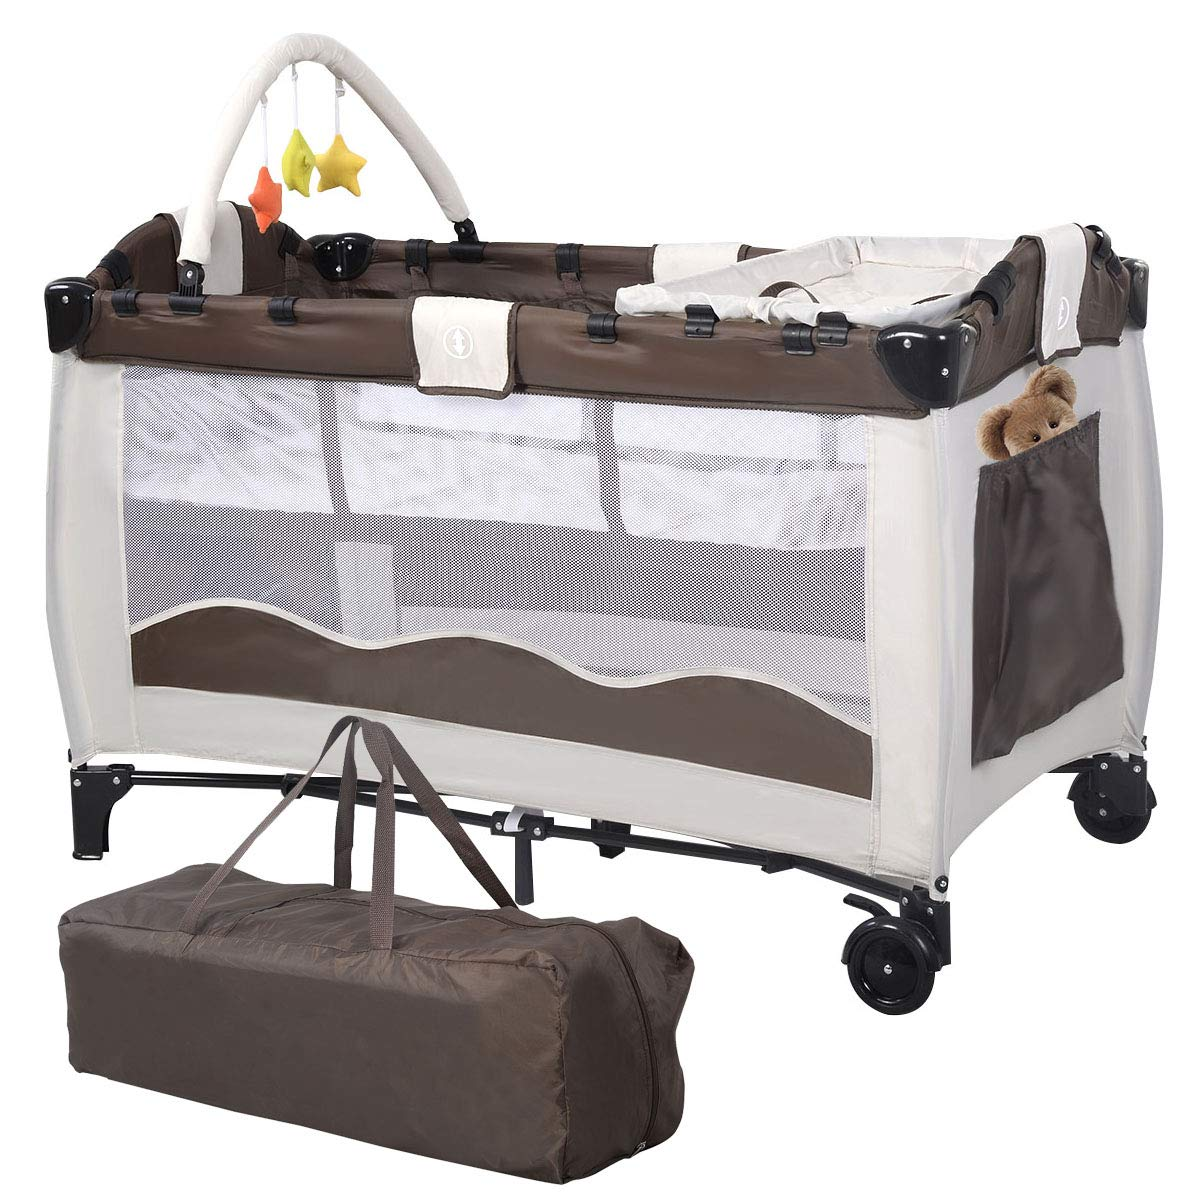 Coffee Baby Travel Cot With Folding Crib Bed And Carry Bag